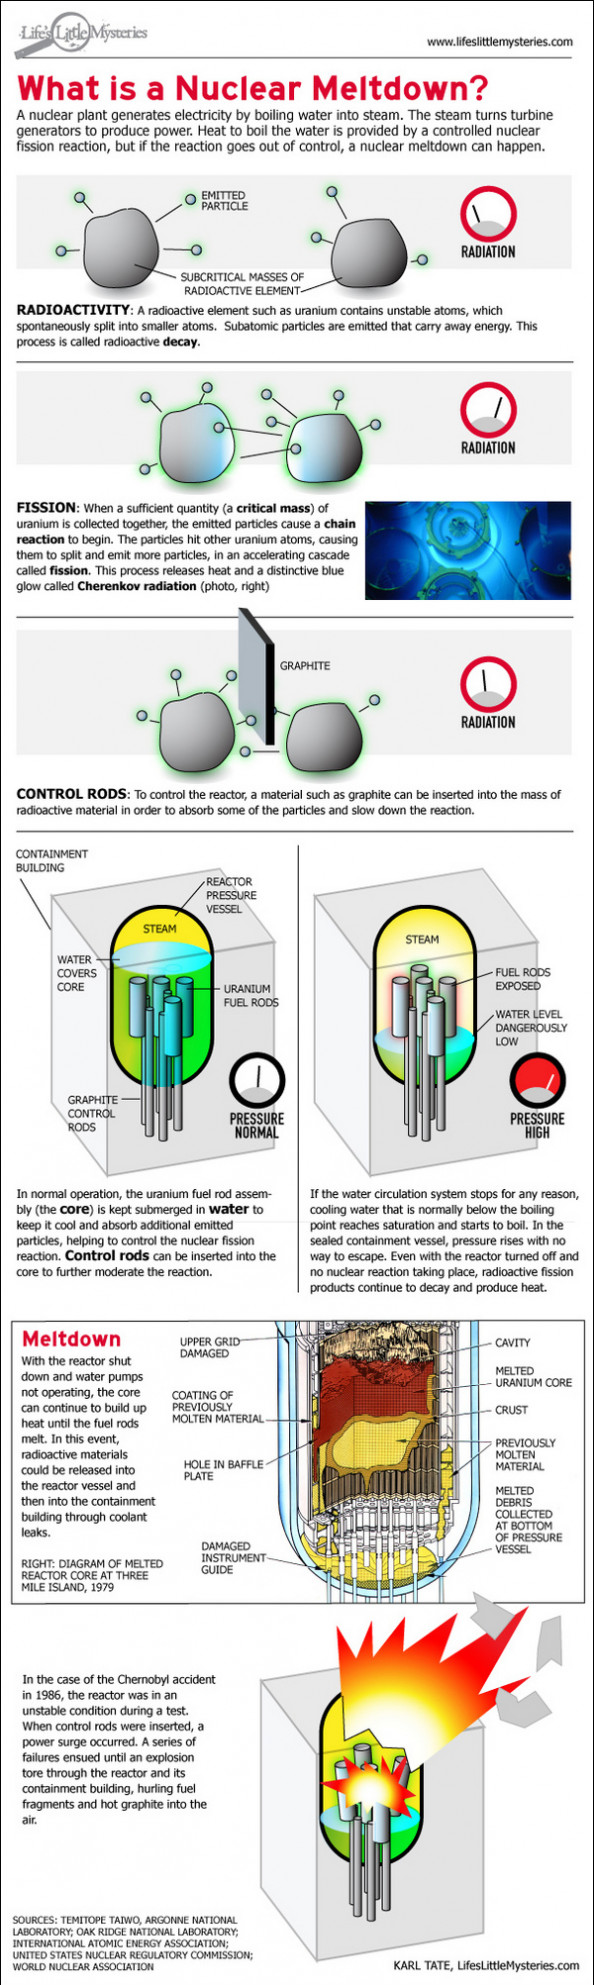 What Is a Nuclear Meltdown? Infographic